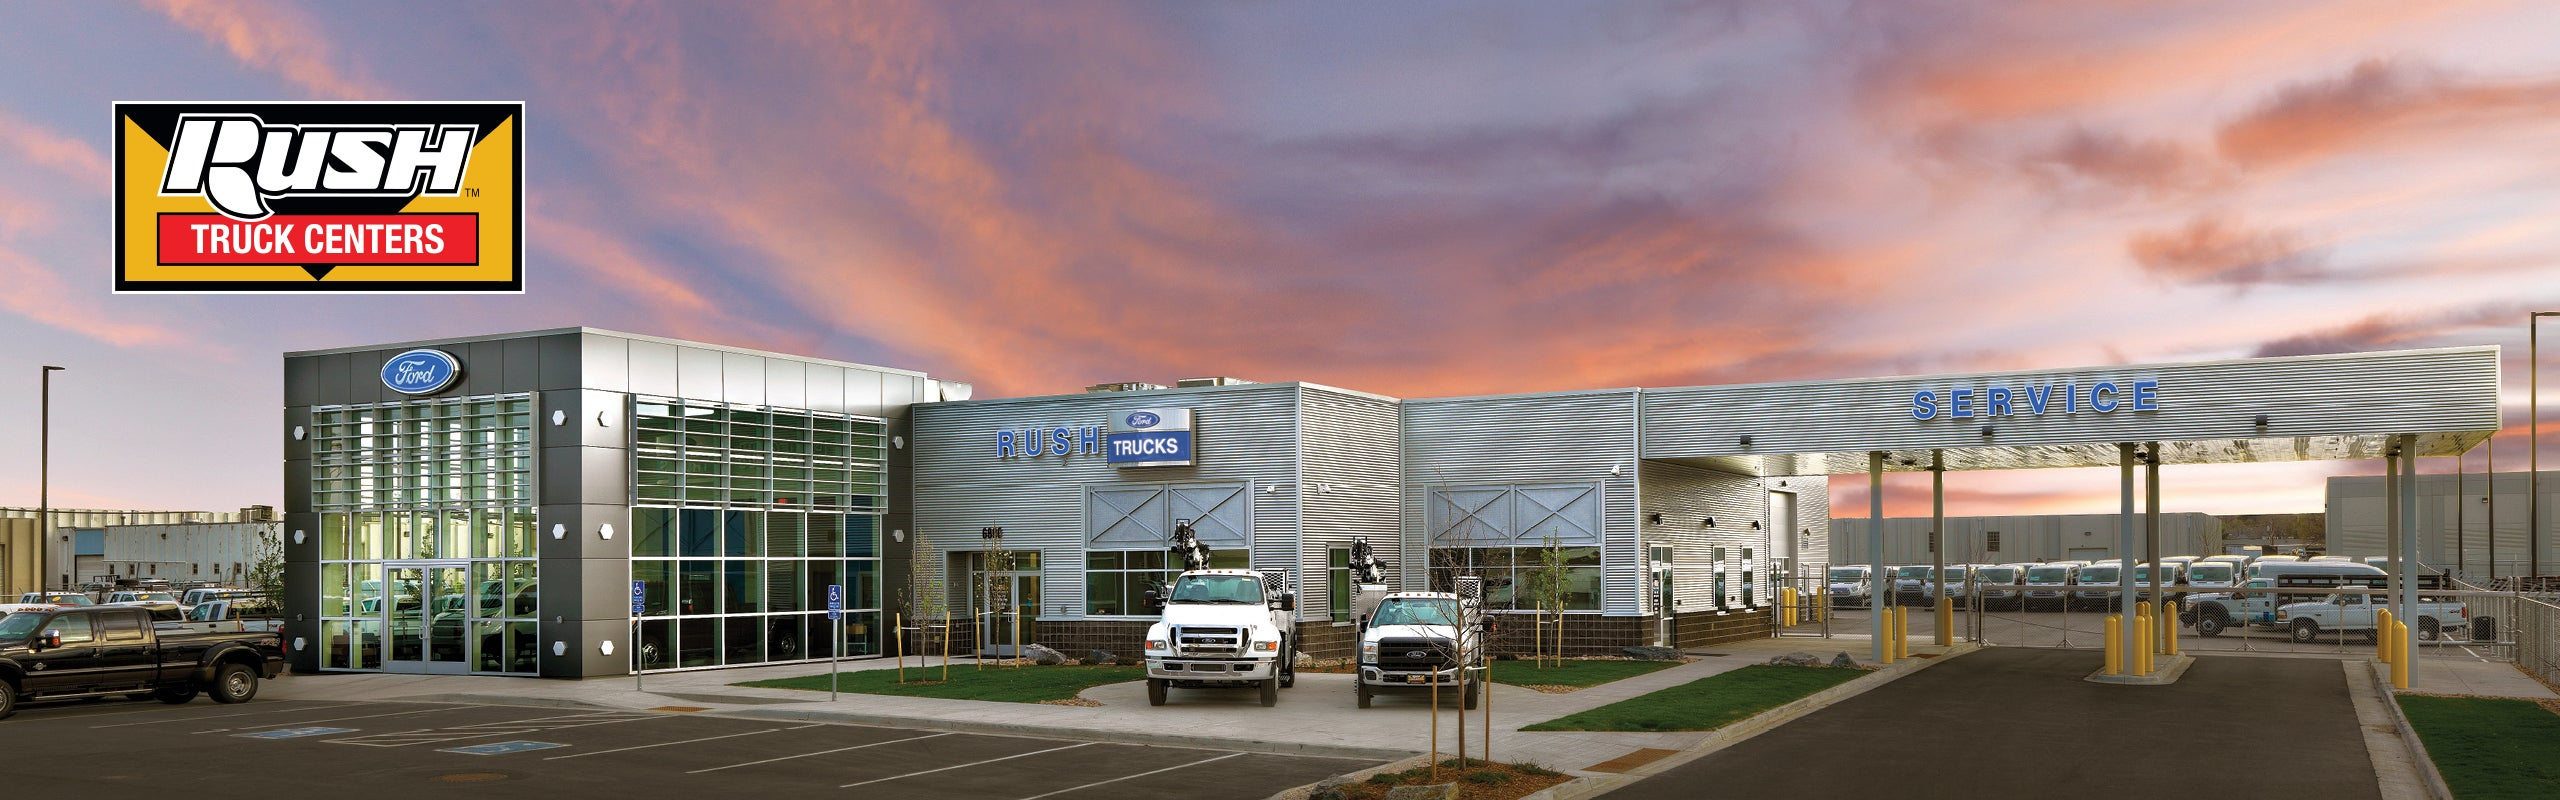 Ford Dealership Orlando >> Ford Dealer In Orlando Fl Used Cars Orlando Rush Truck